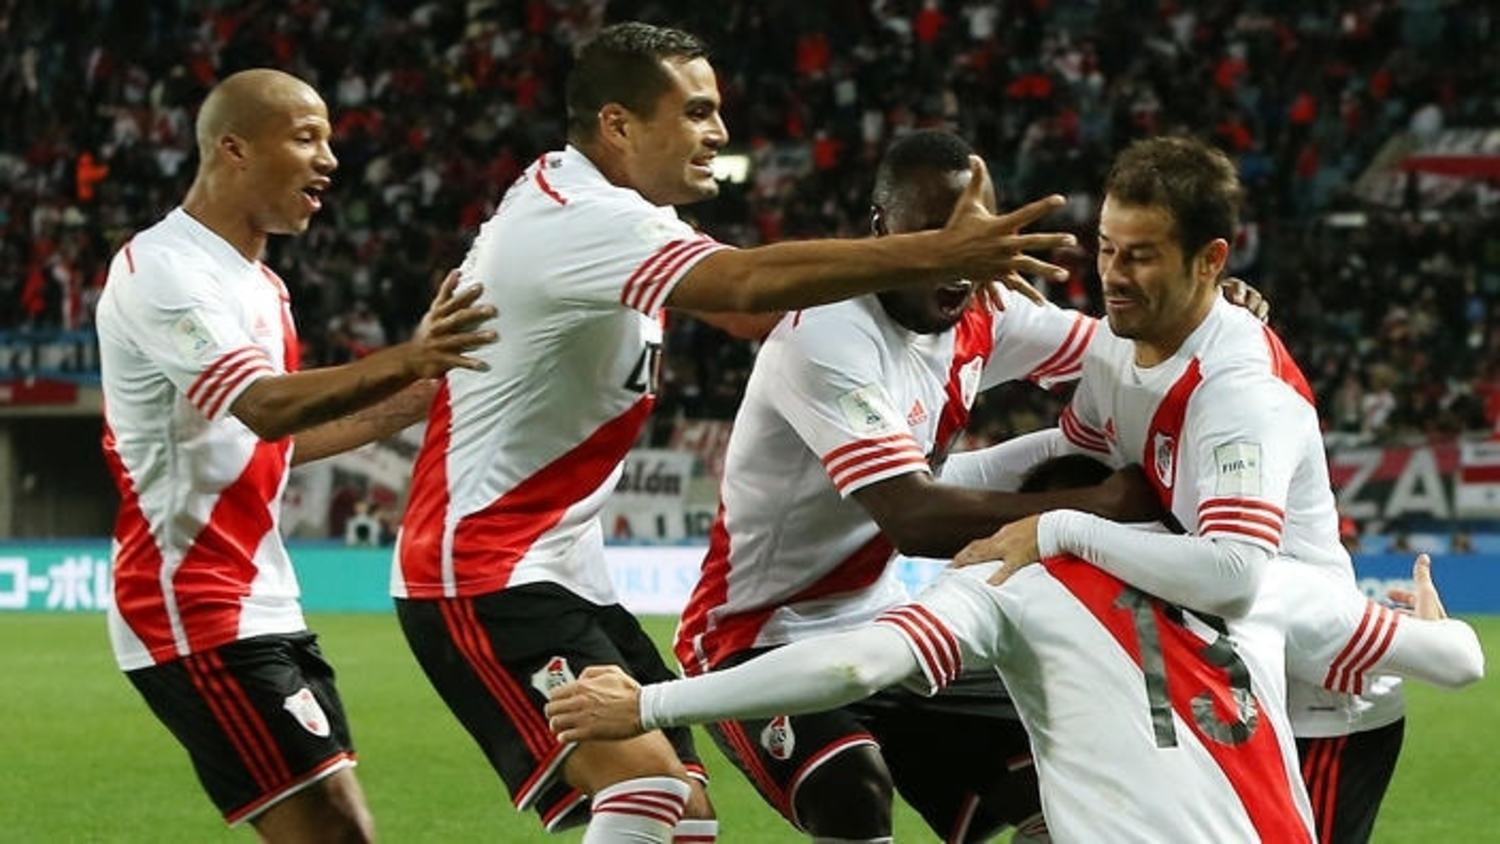 Excitement at River Plate's Club World Cup return